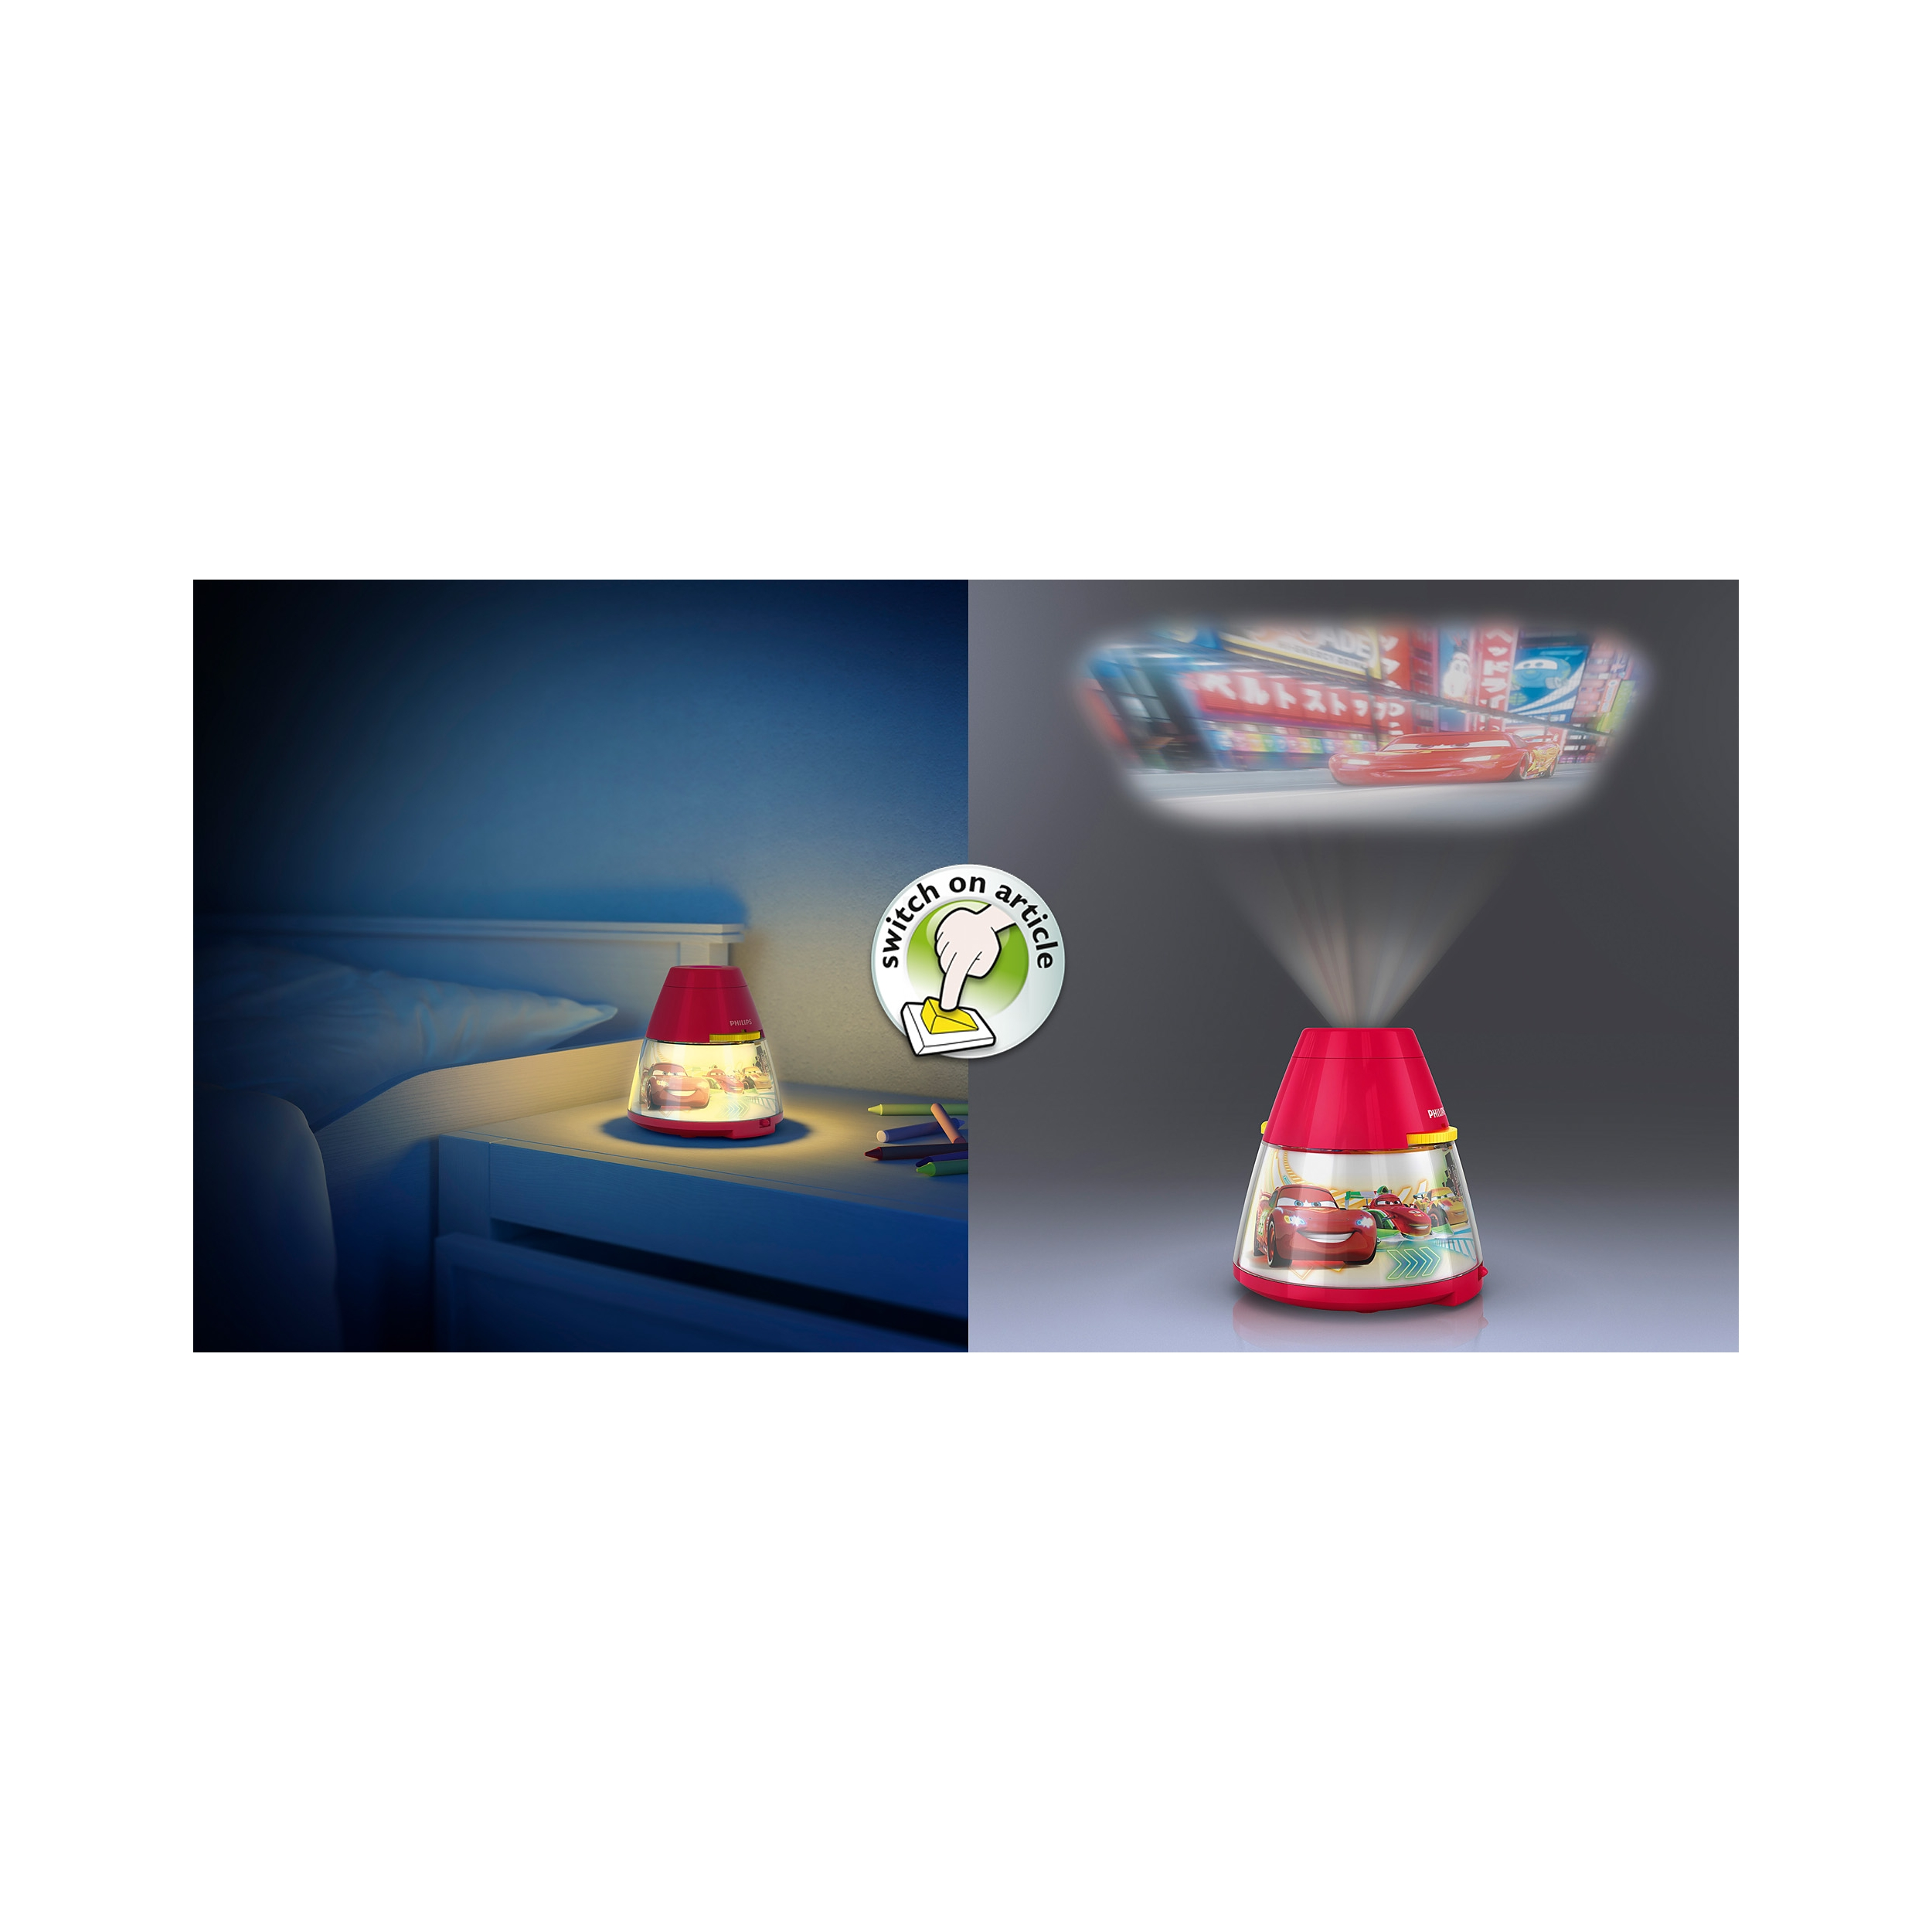 philips led lampe kinderzimmer disney projektor tischleuchte cars licht ebay. Black Bedroom Furniture Sets. Home Design Ideas